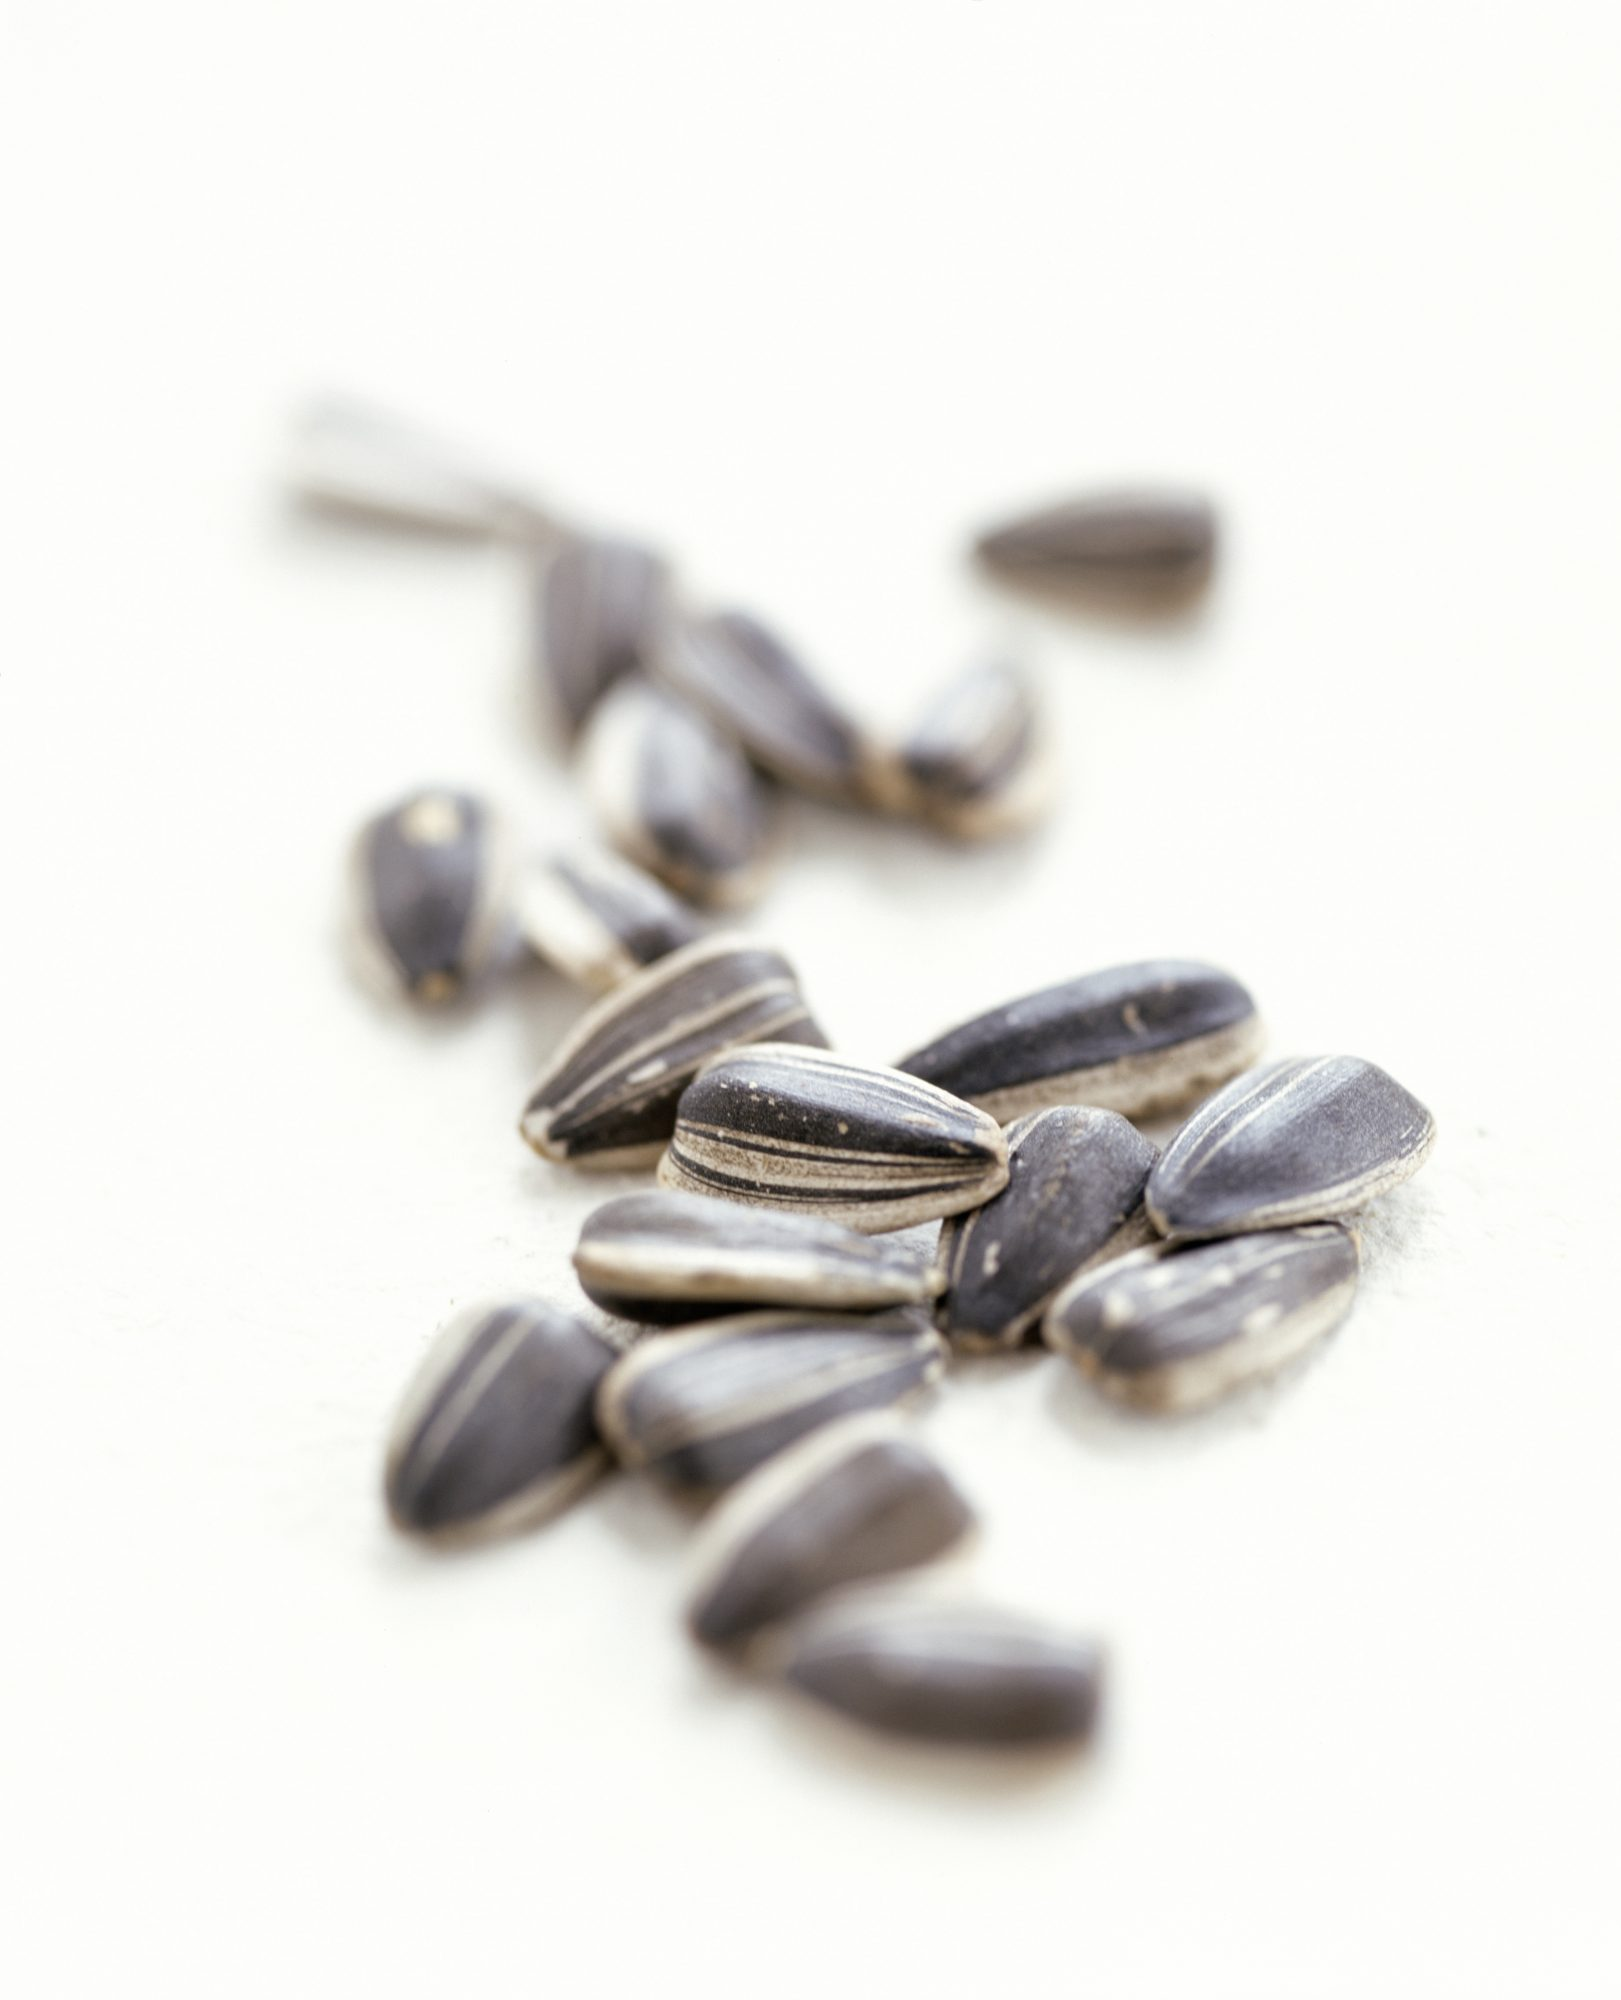 sunflower-seeds-help-colds